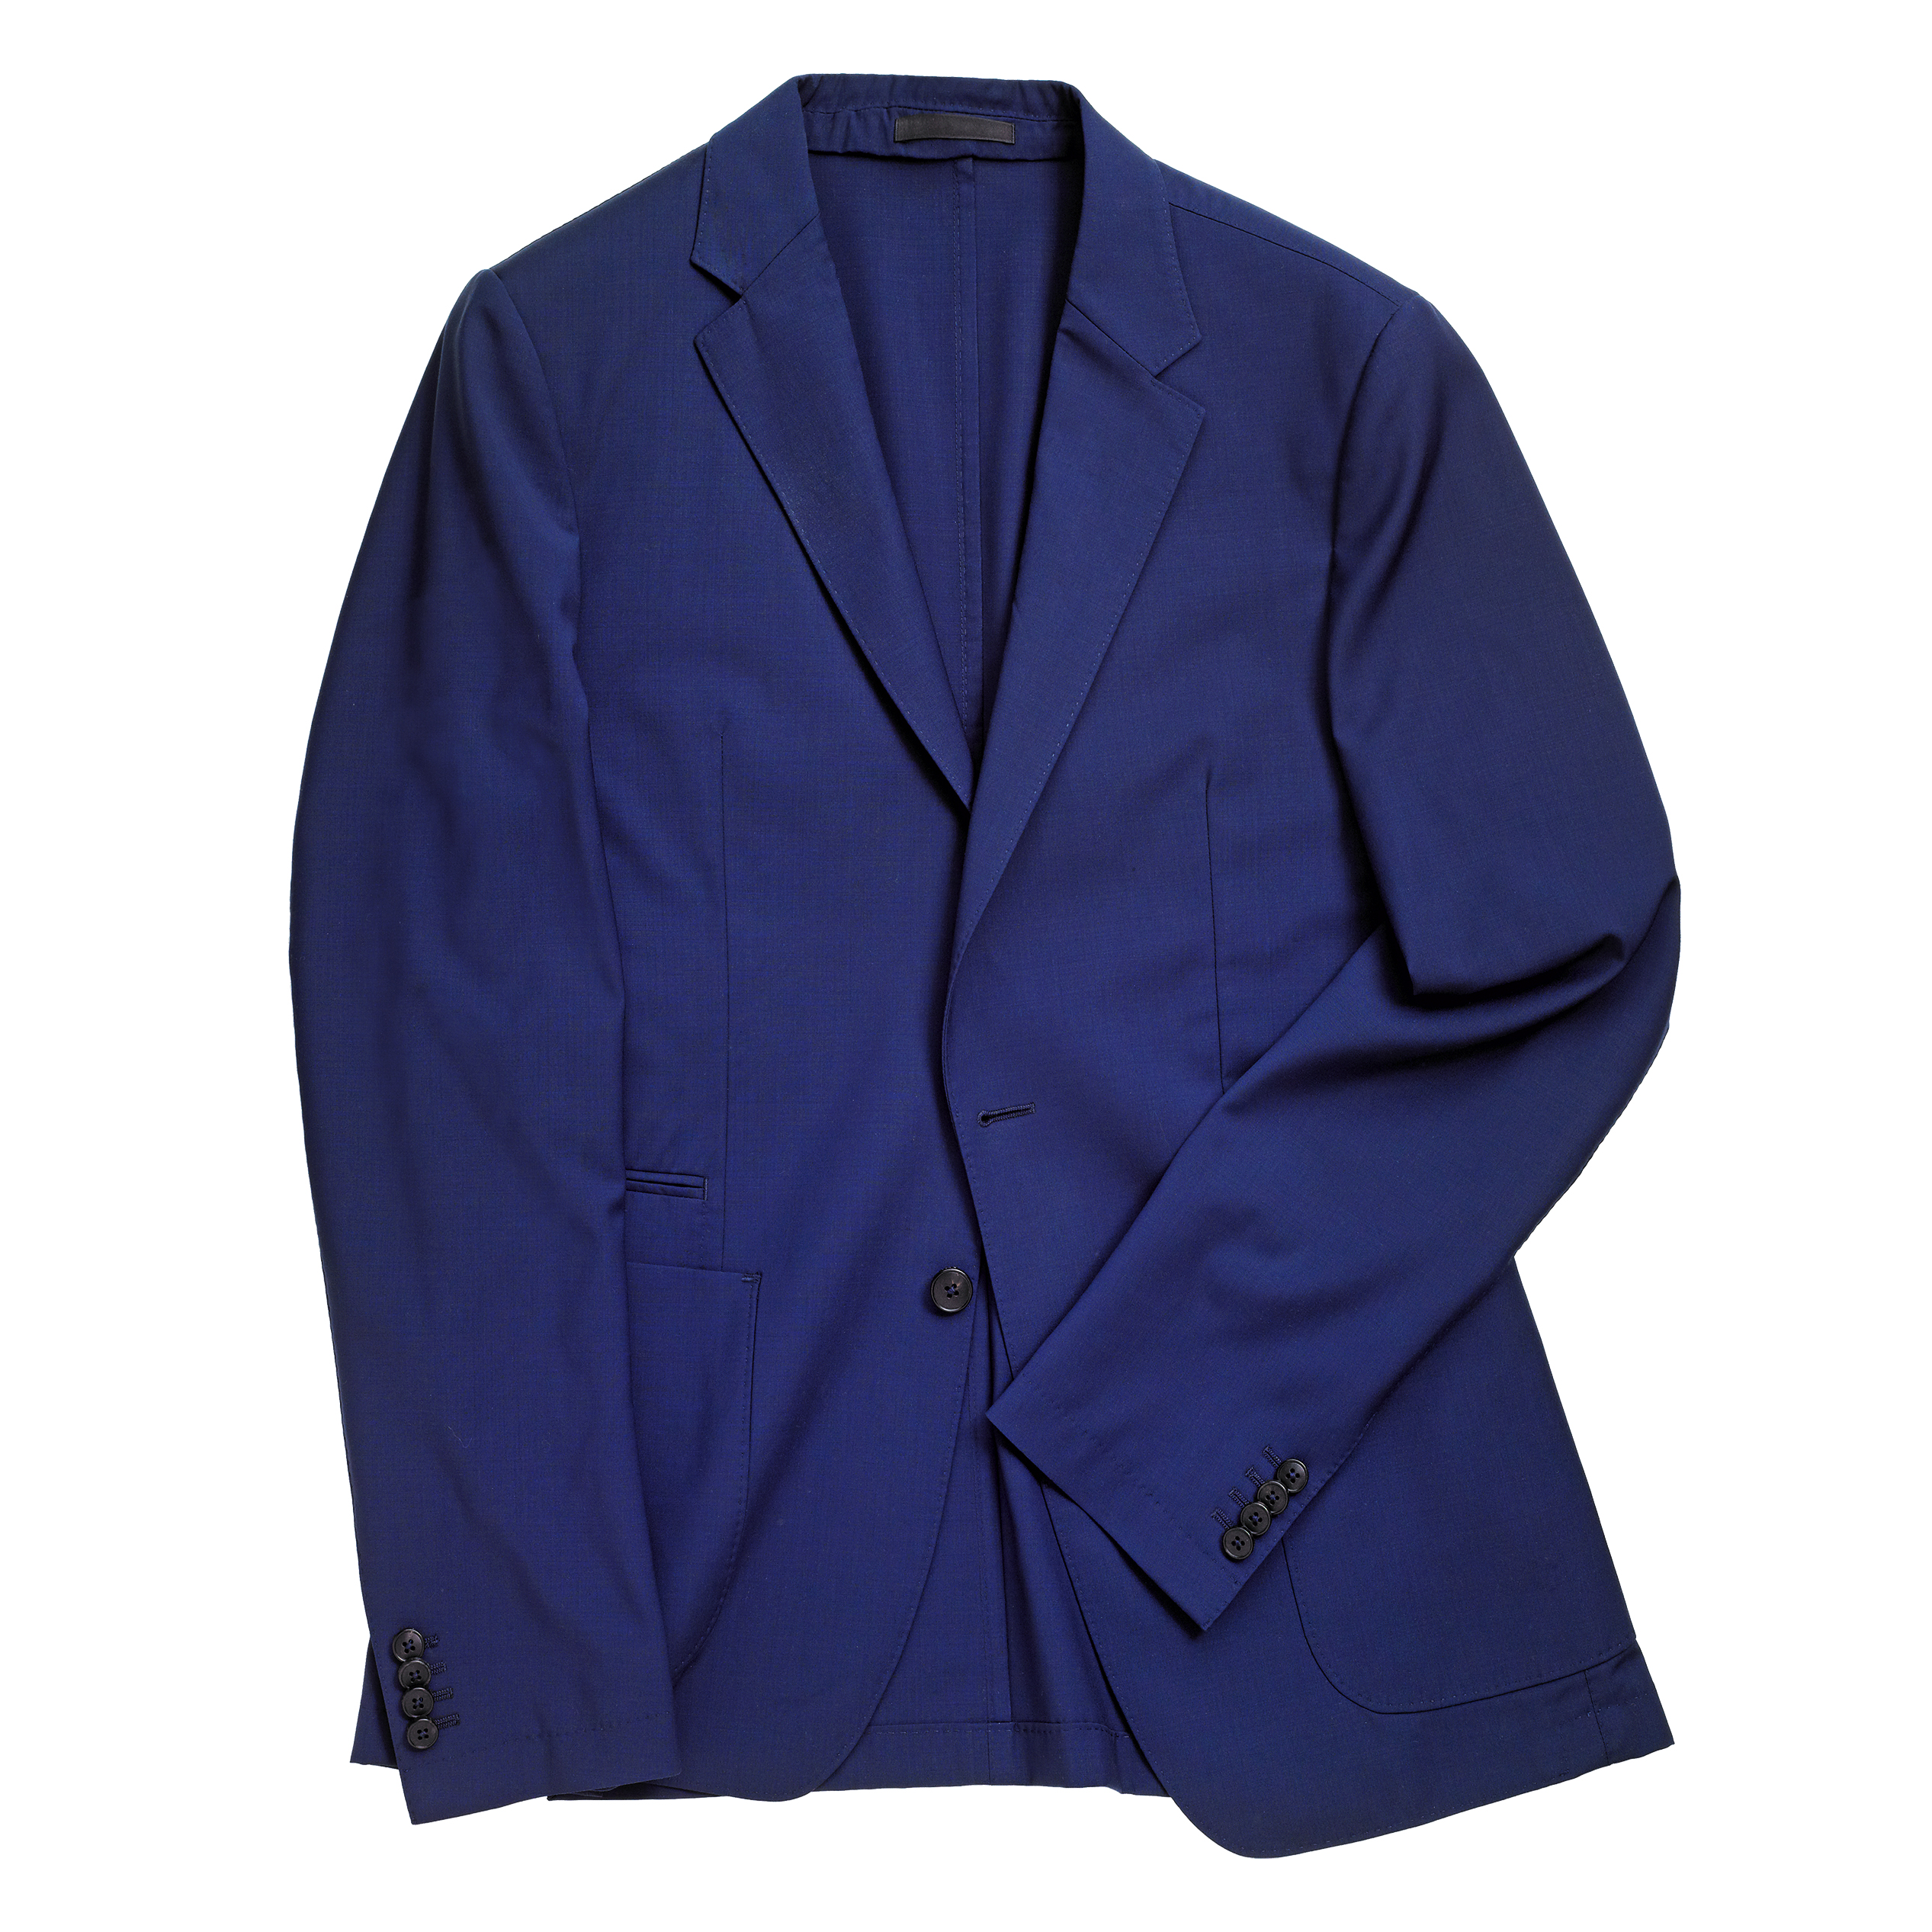 71cd0a0c A revolutionary washable suit from Ermenegildo Zegna | How To Spend It